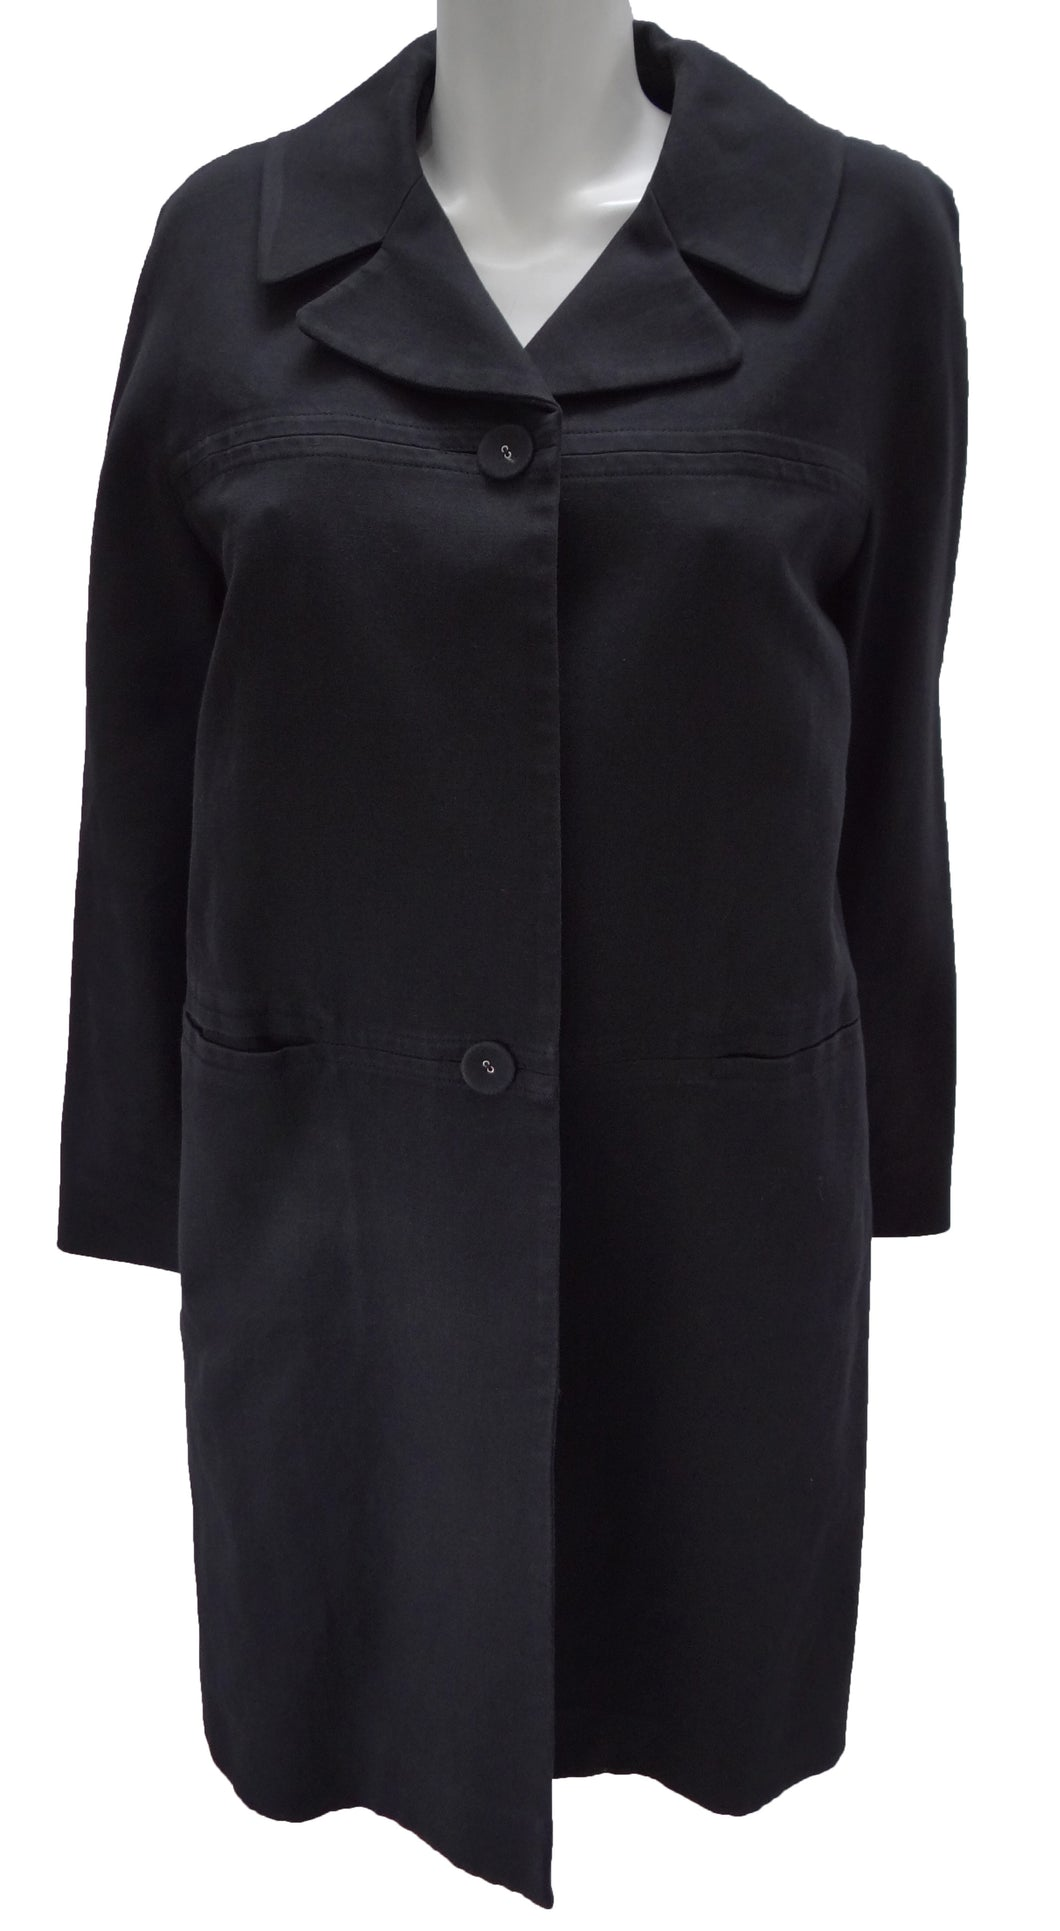 Nicole Farhi Black Linen Duster Coat UK12